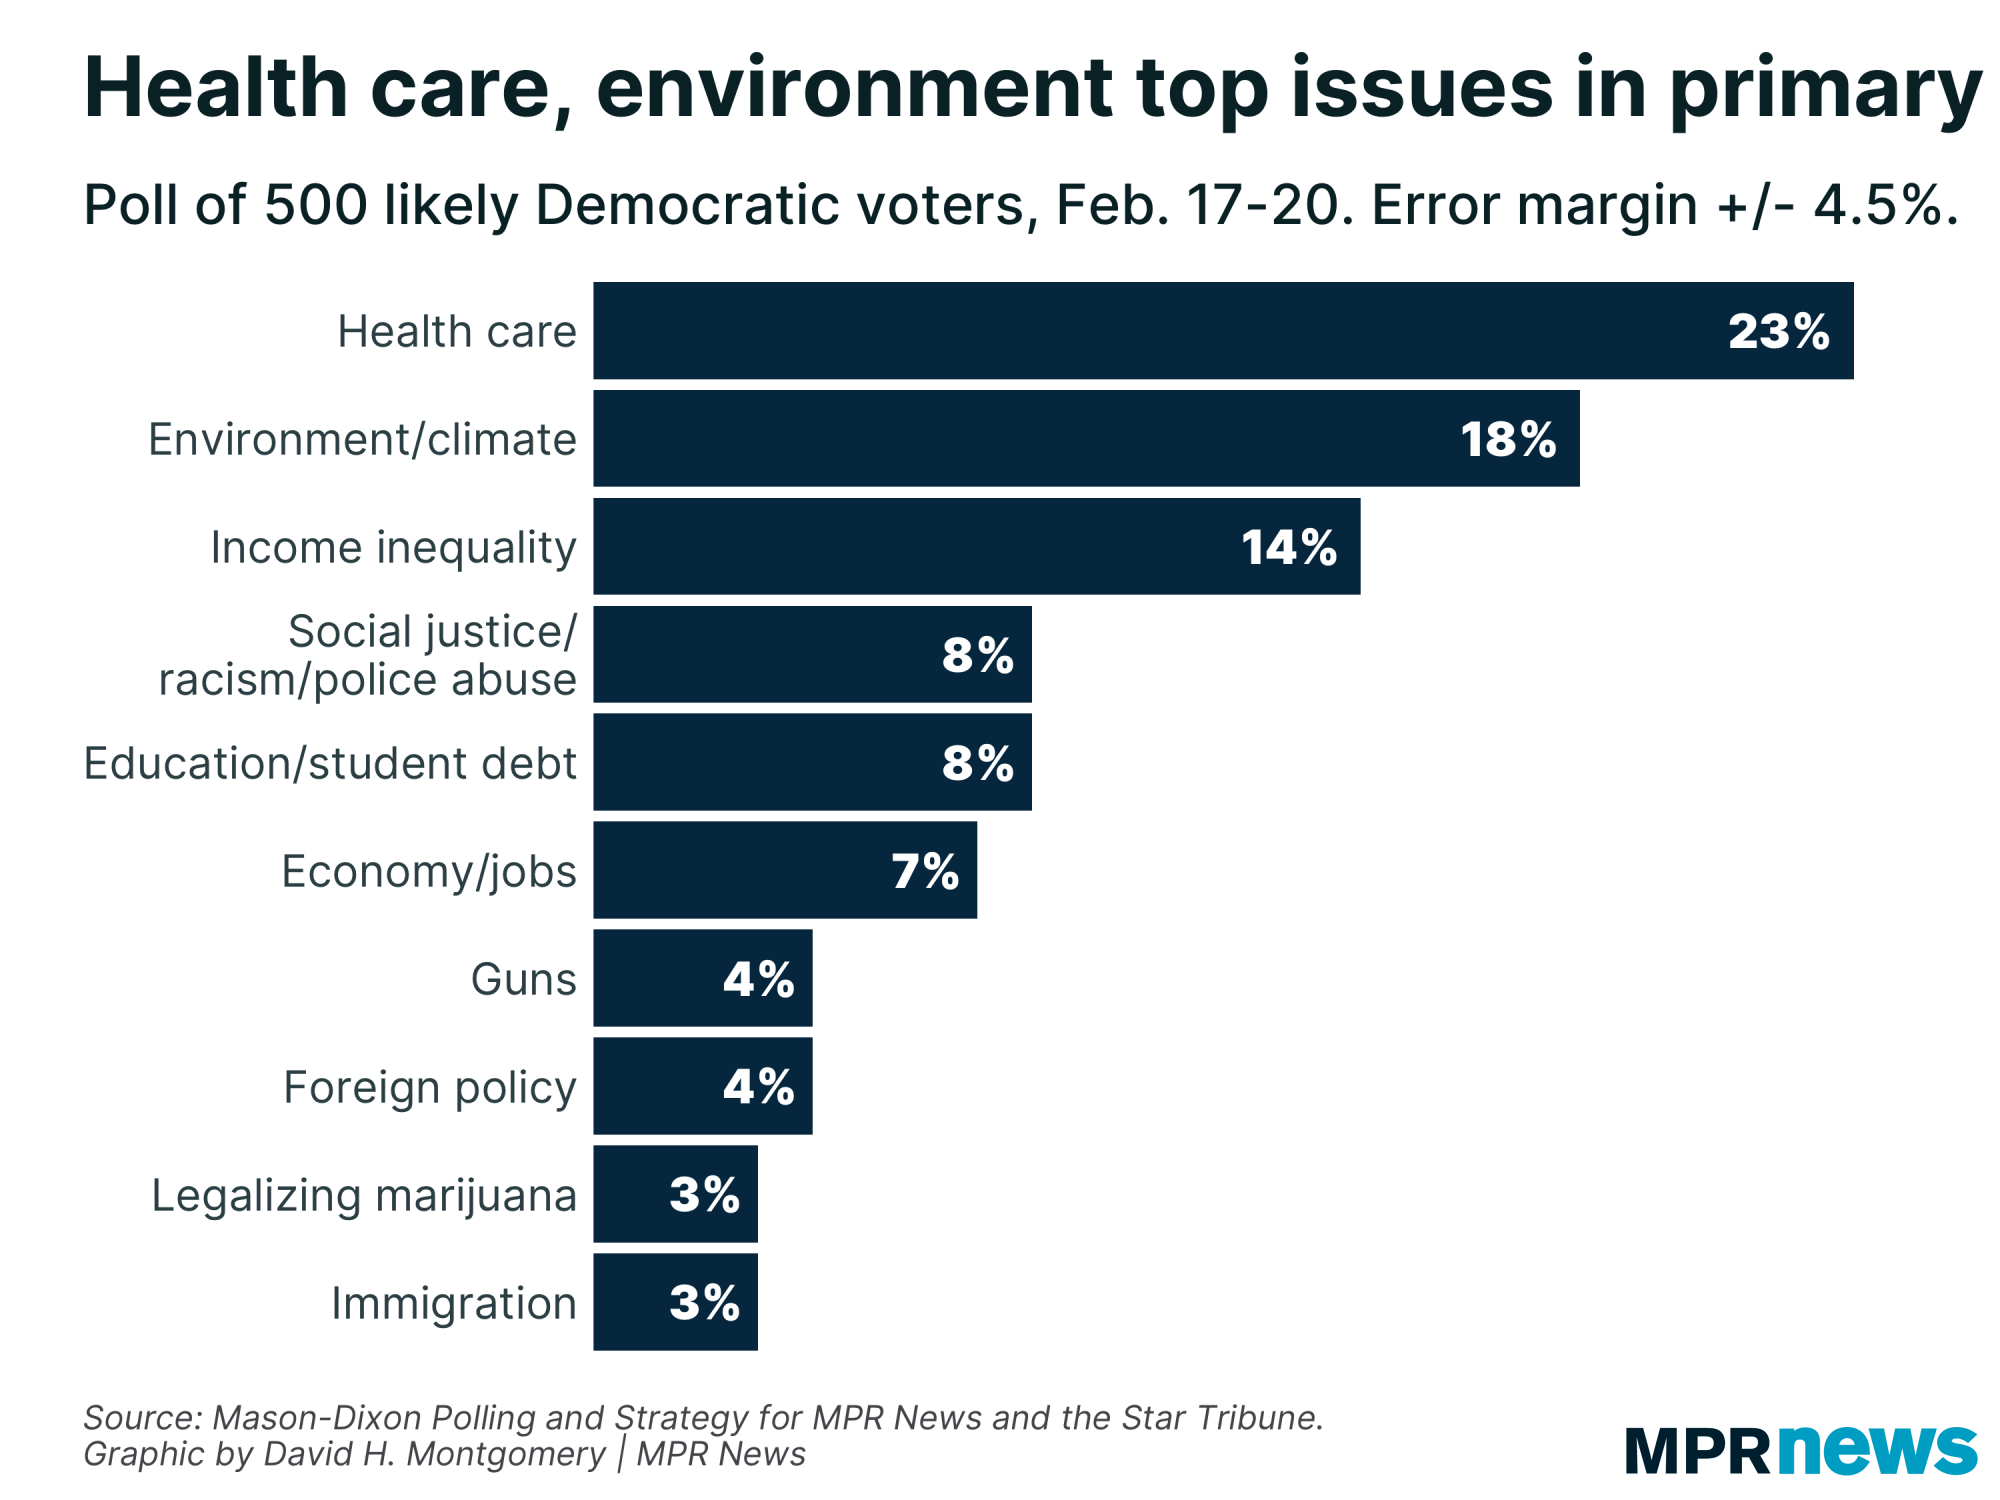 Health care, environment are among top issues in the presidential primary.